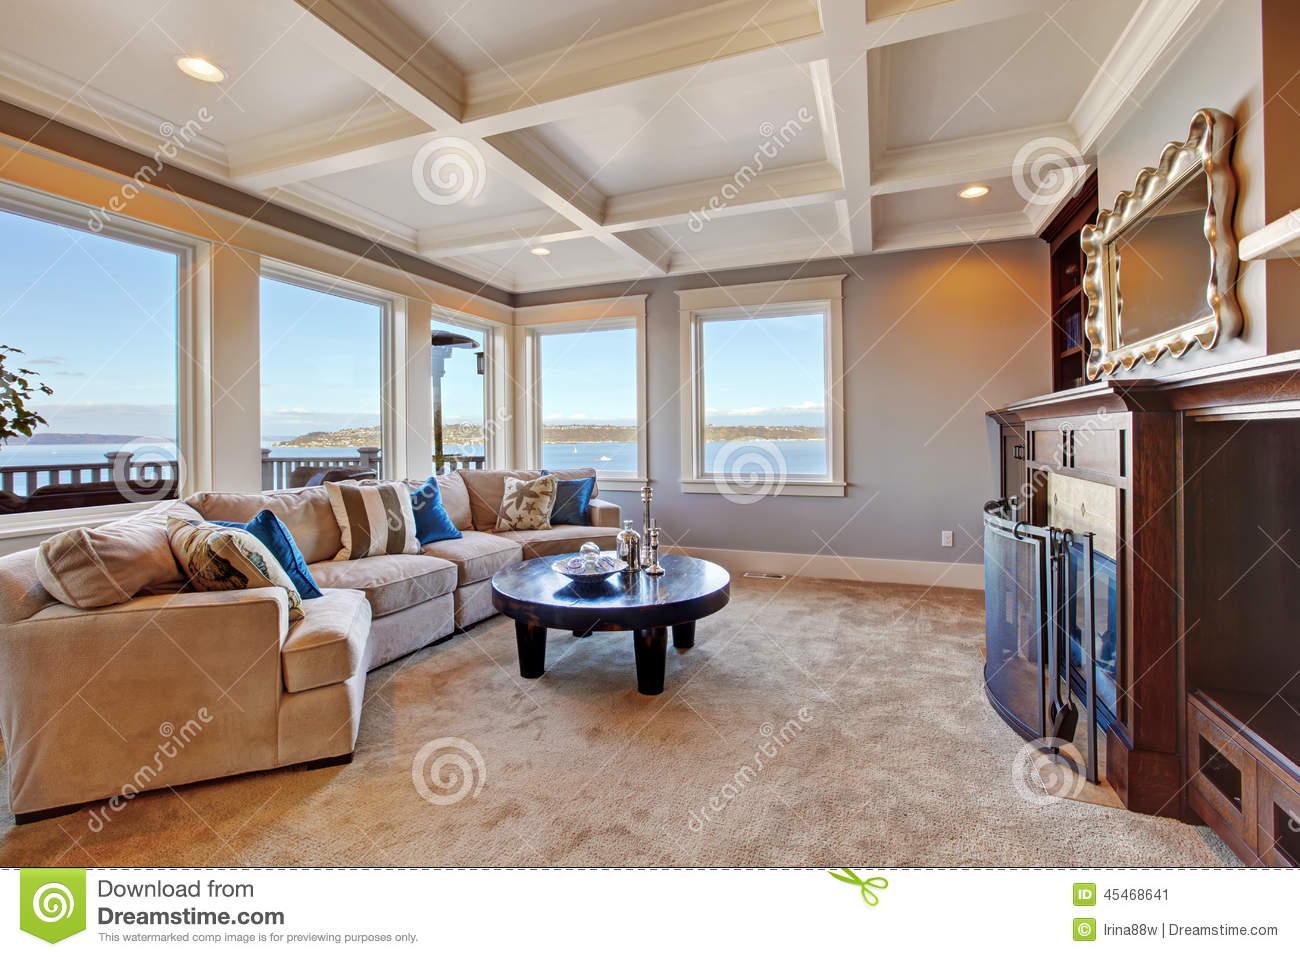 Warm living room interior in luxury house with puget sound view